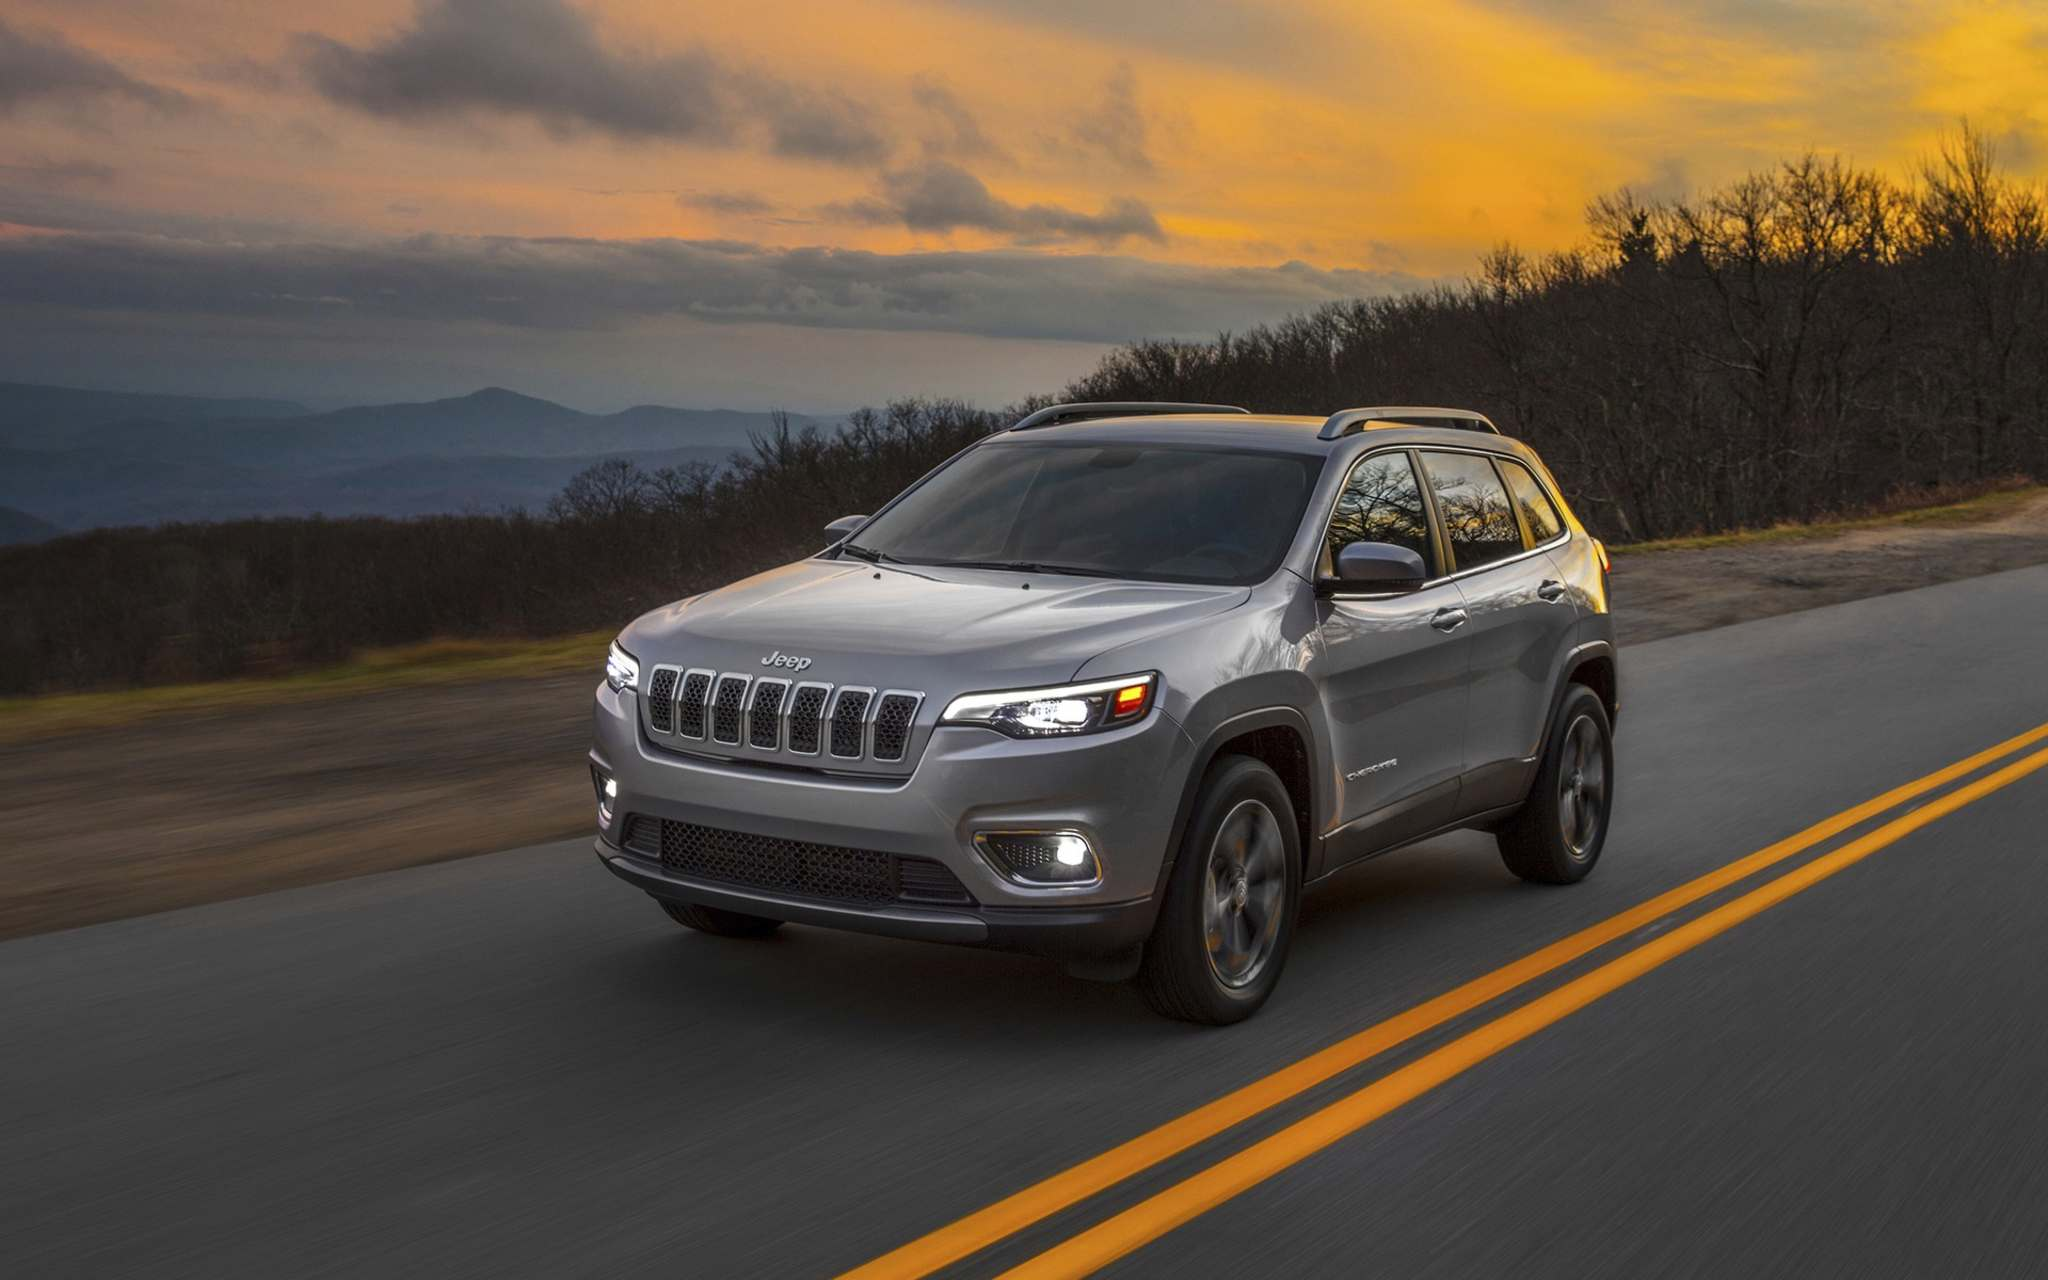 Photos by FCAIt took several years, but the Jeep Cherokee has become an accepted compact SUV. The coming year will see substantial changes for the vehicle, which last year sold 23,702 models in Canada alone.